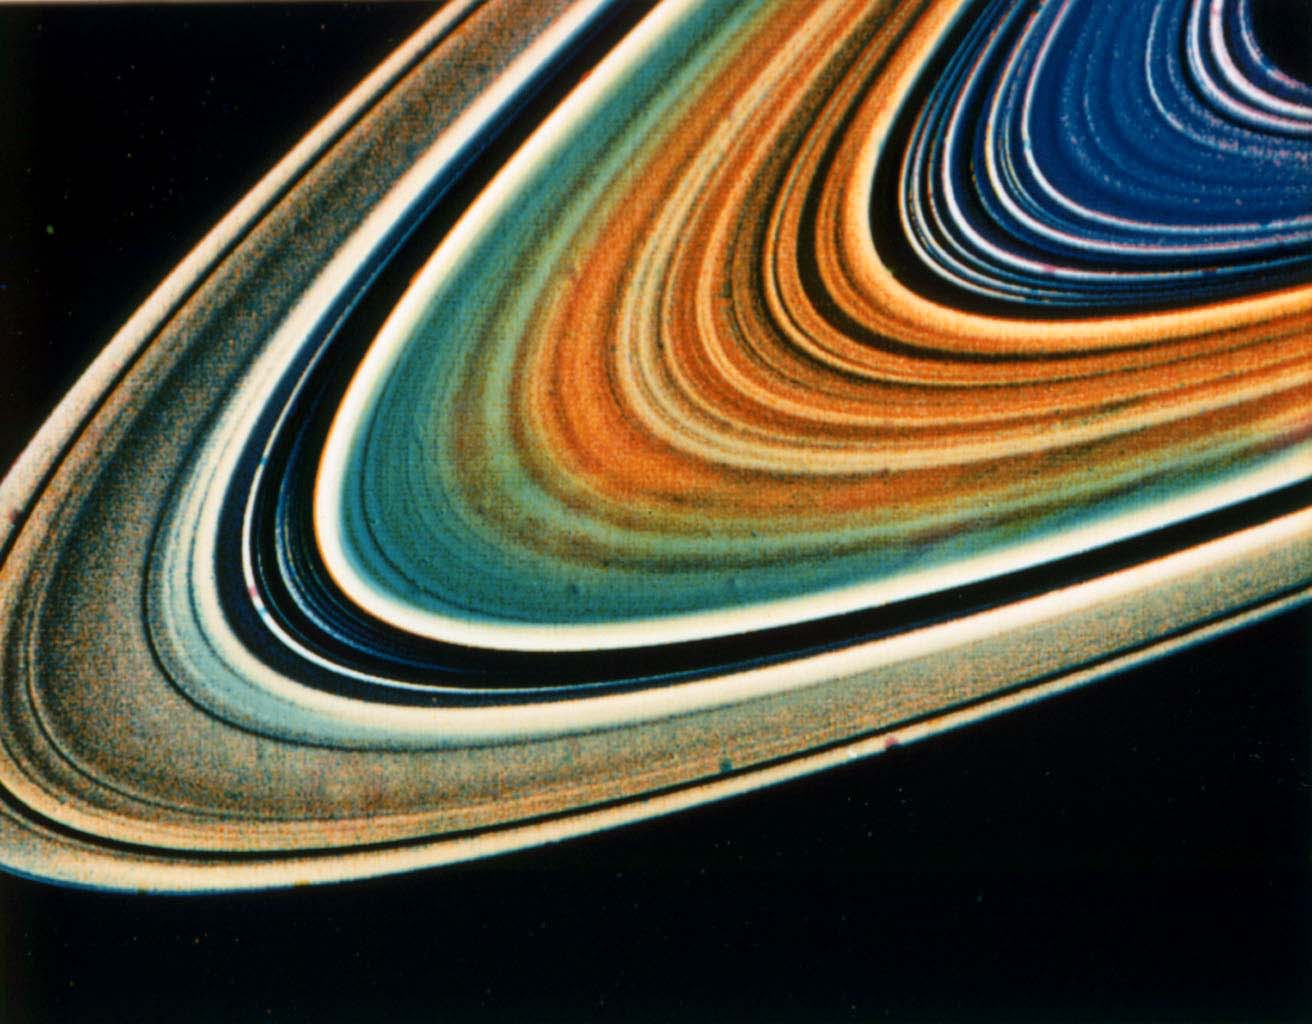 Possible variations in chemical composition from one part of Saturn's ring system to another are visible from Voyager 2.